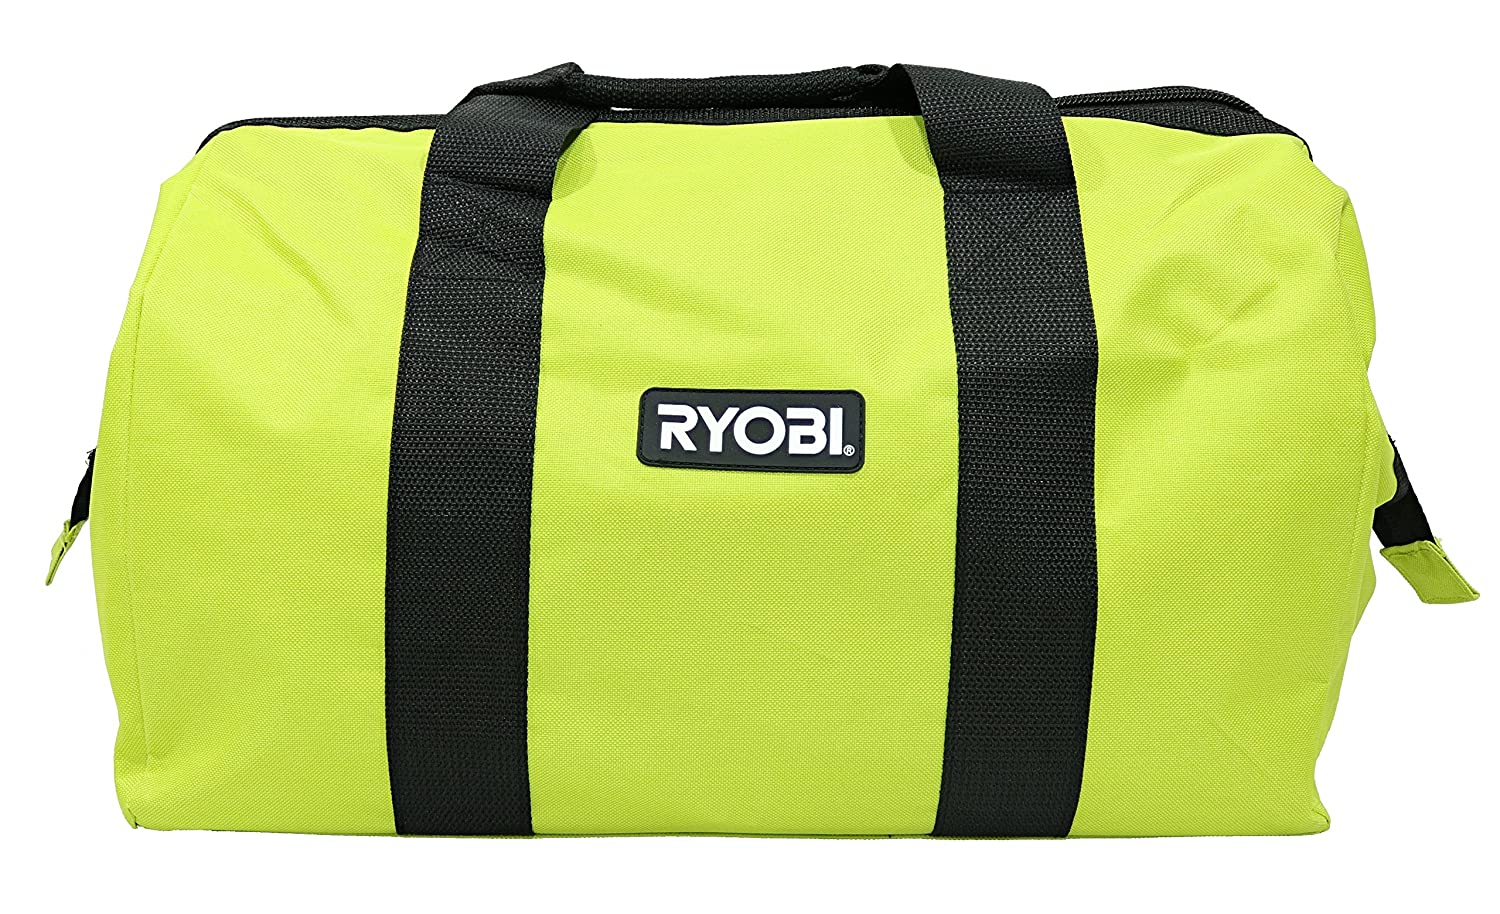 Ryobi Green Wide Mouth Collapsible Genuine OEM Contractor's Bag w/ Full Top Single Zipper Action and Cross X Stitching